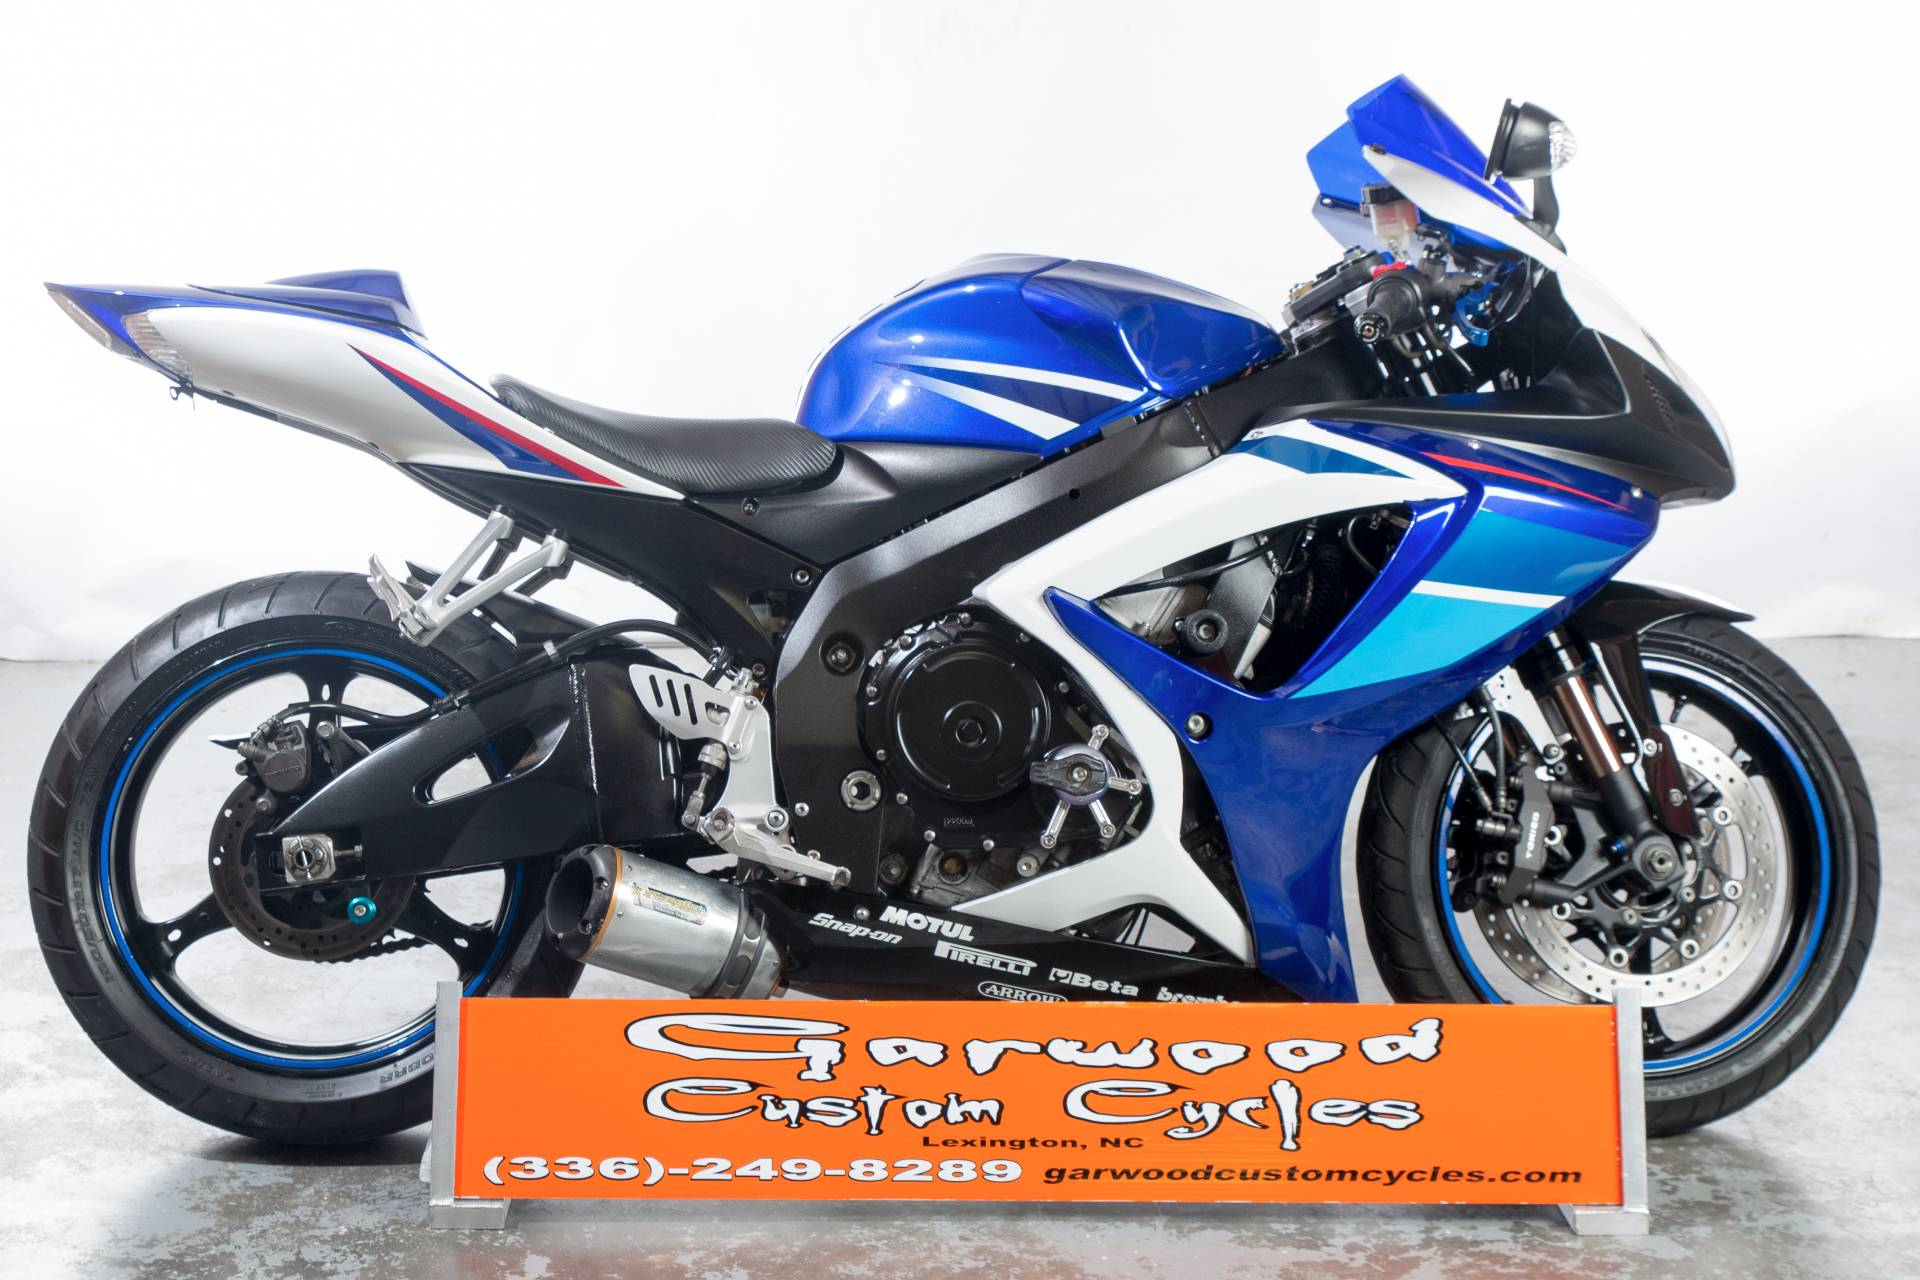 Suzuki Gsxr 750 >> 2007 Suzuki Gsxr 750 In Lexington North Carolina